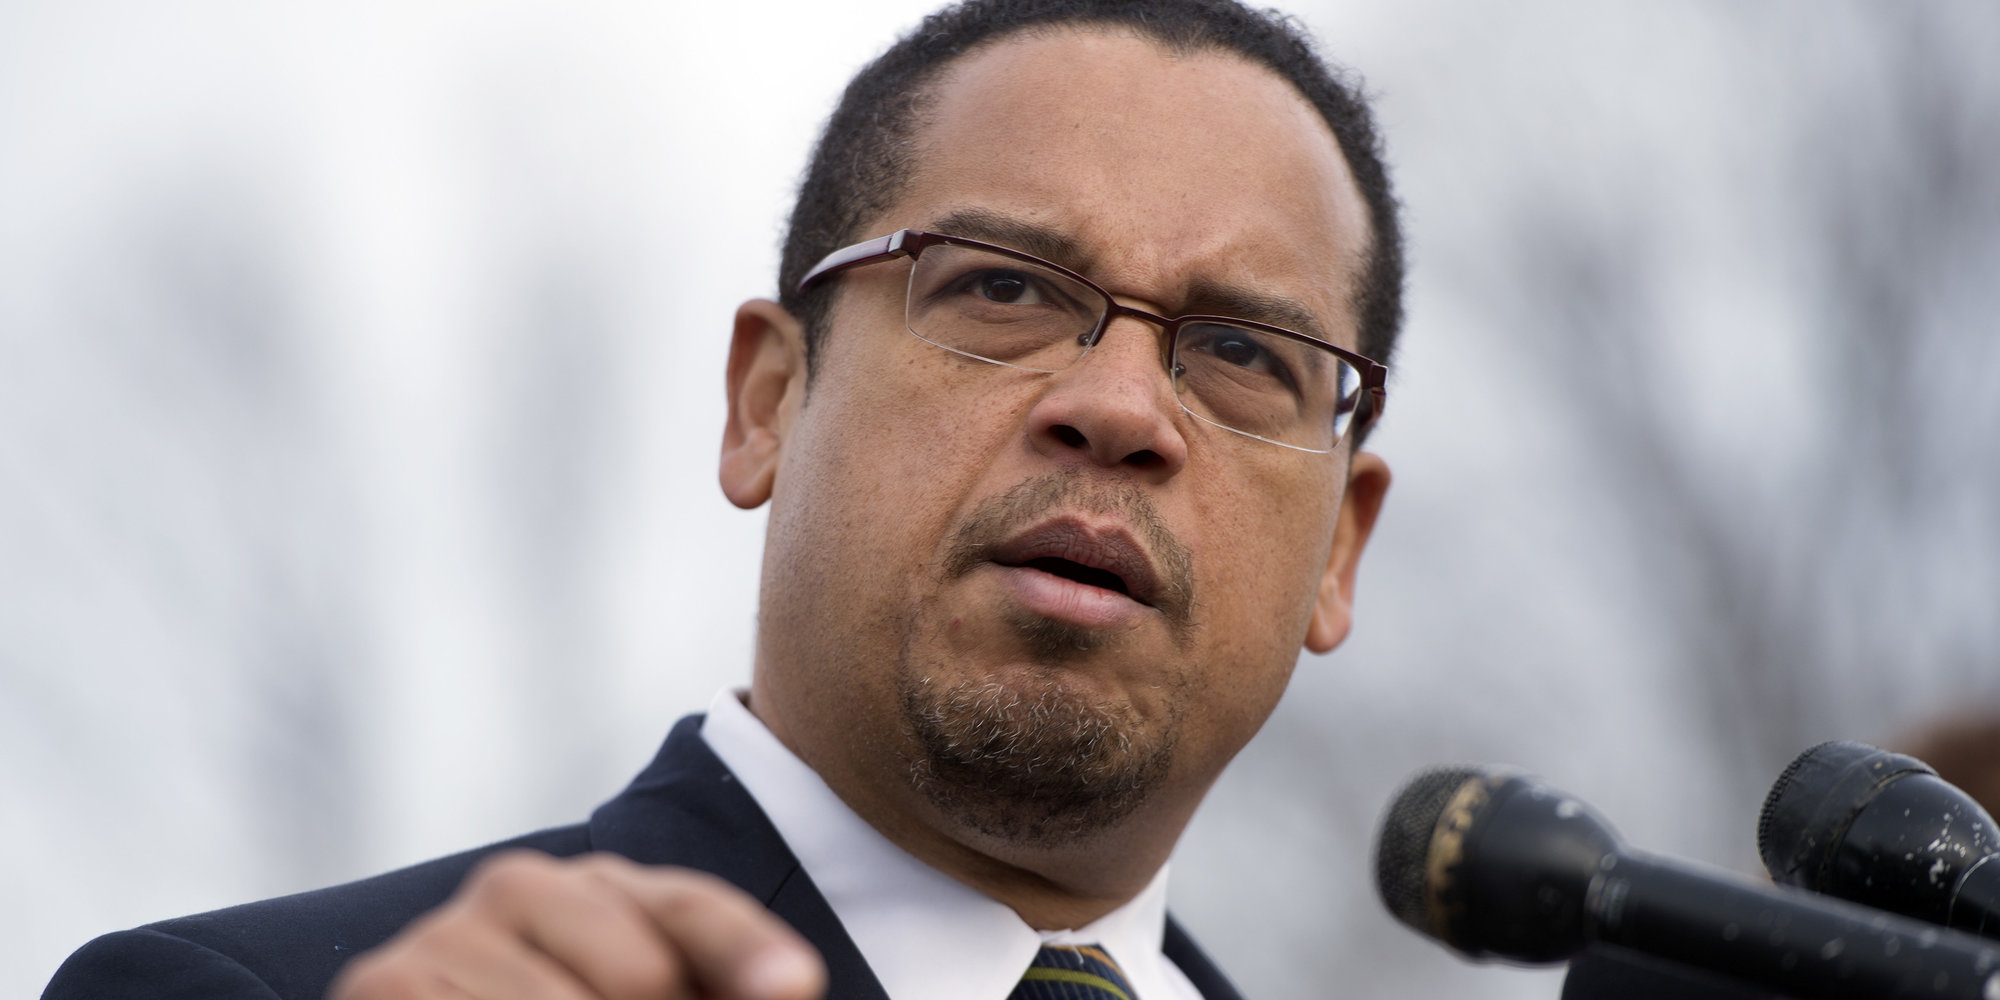 """UNITED STATES - DECEMBER 20: Rep. Keith Ellison, D-Minn., speaks at a news conference at the House Triangle with faith leaders to urge Congress to protect programs such as Social Security, Medicaid, and Medicare and call on lawmakers make sure """"everyone pays their fair share."""" (Photo By Tom Williams/CQ Roll Call)"""